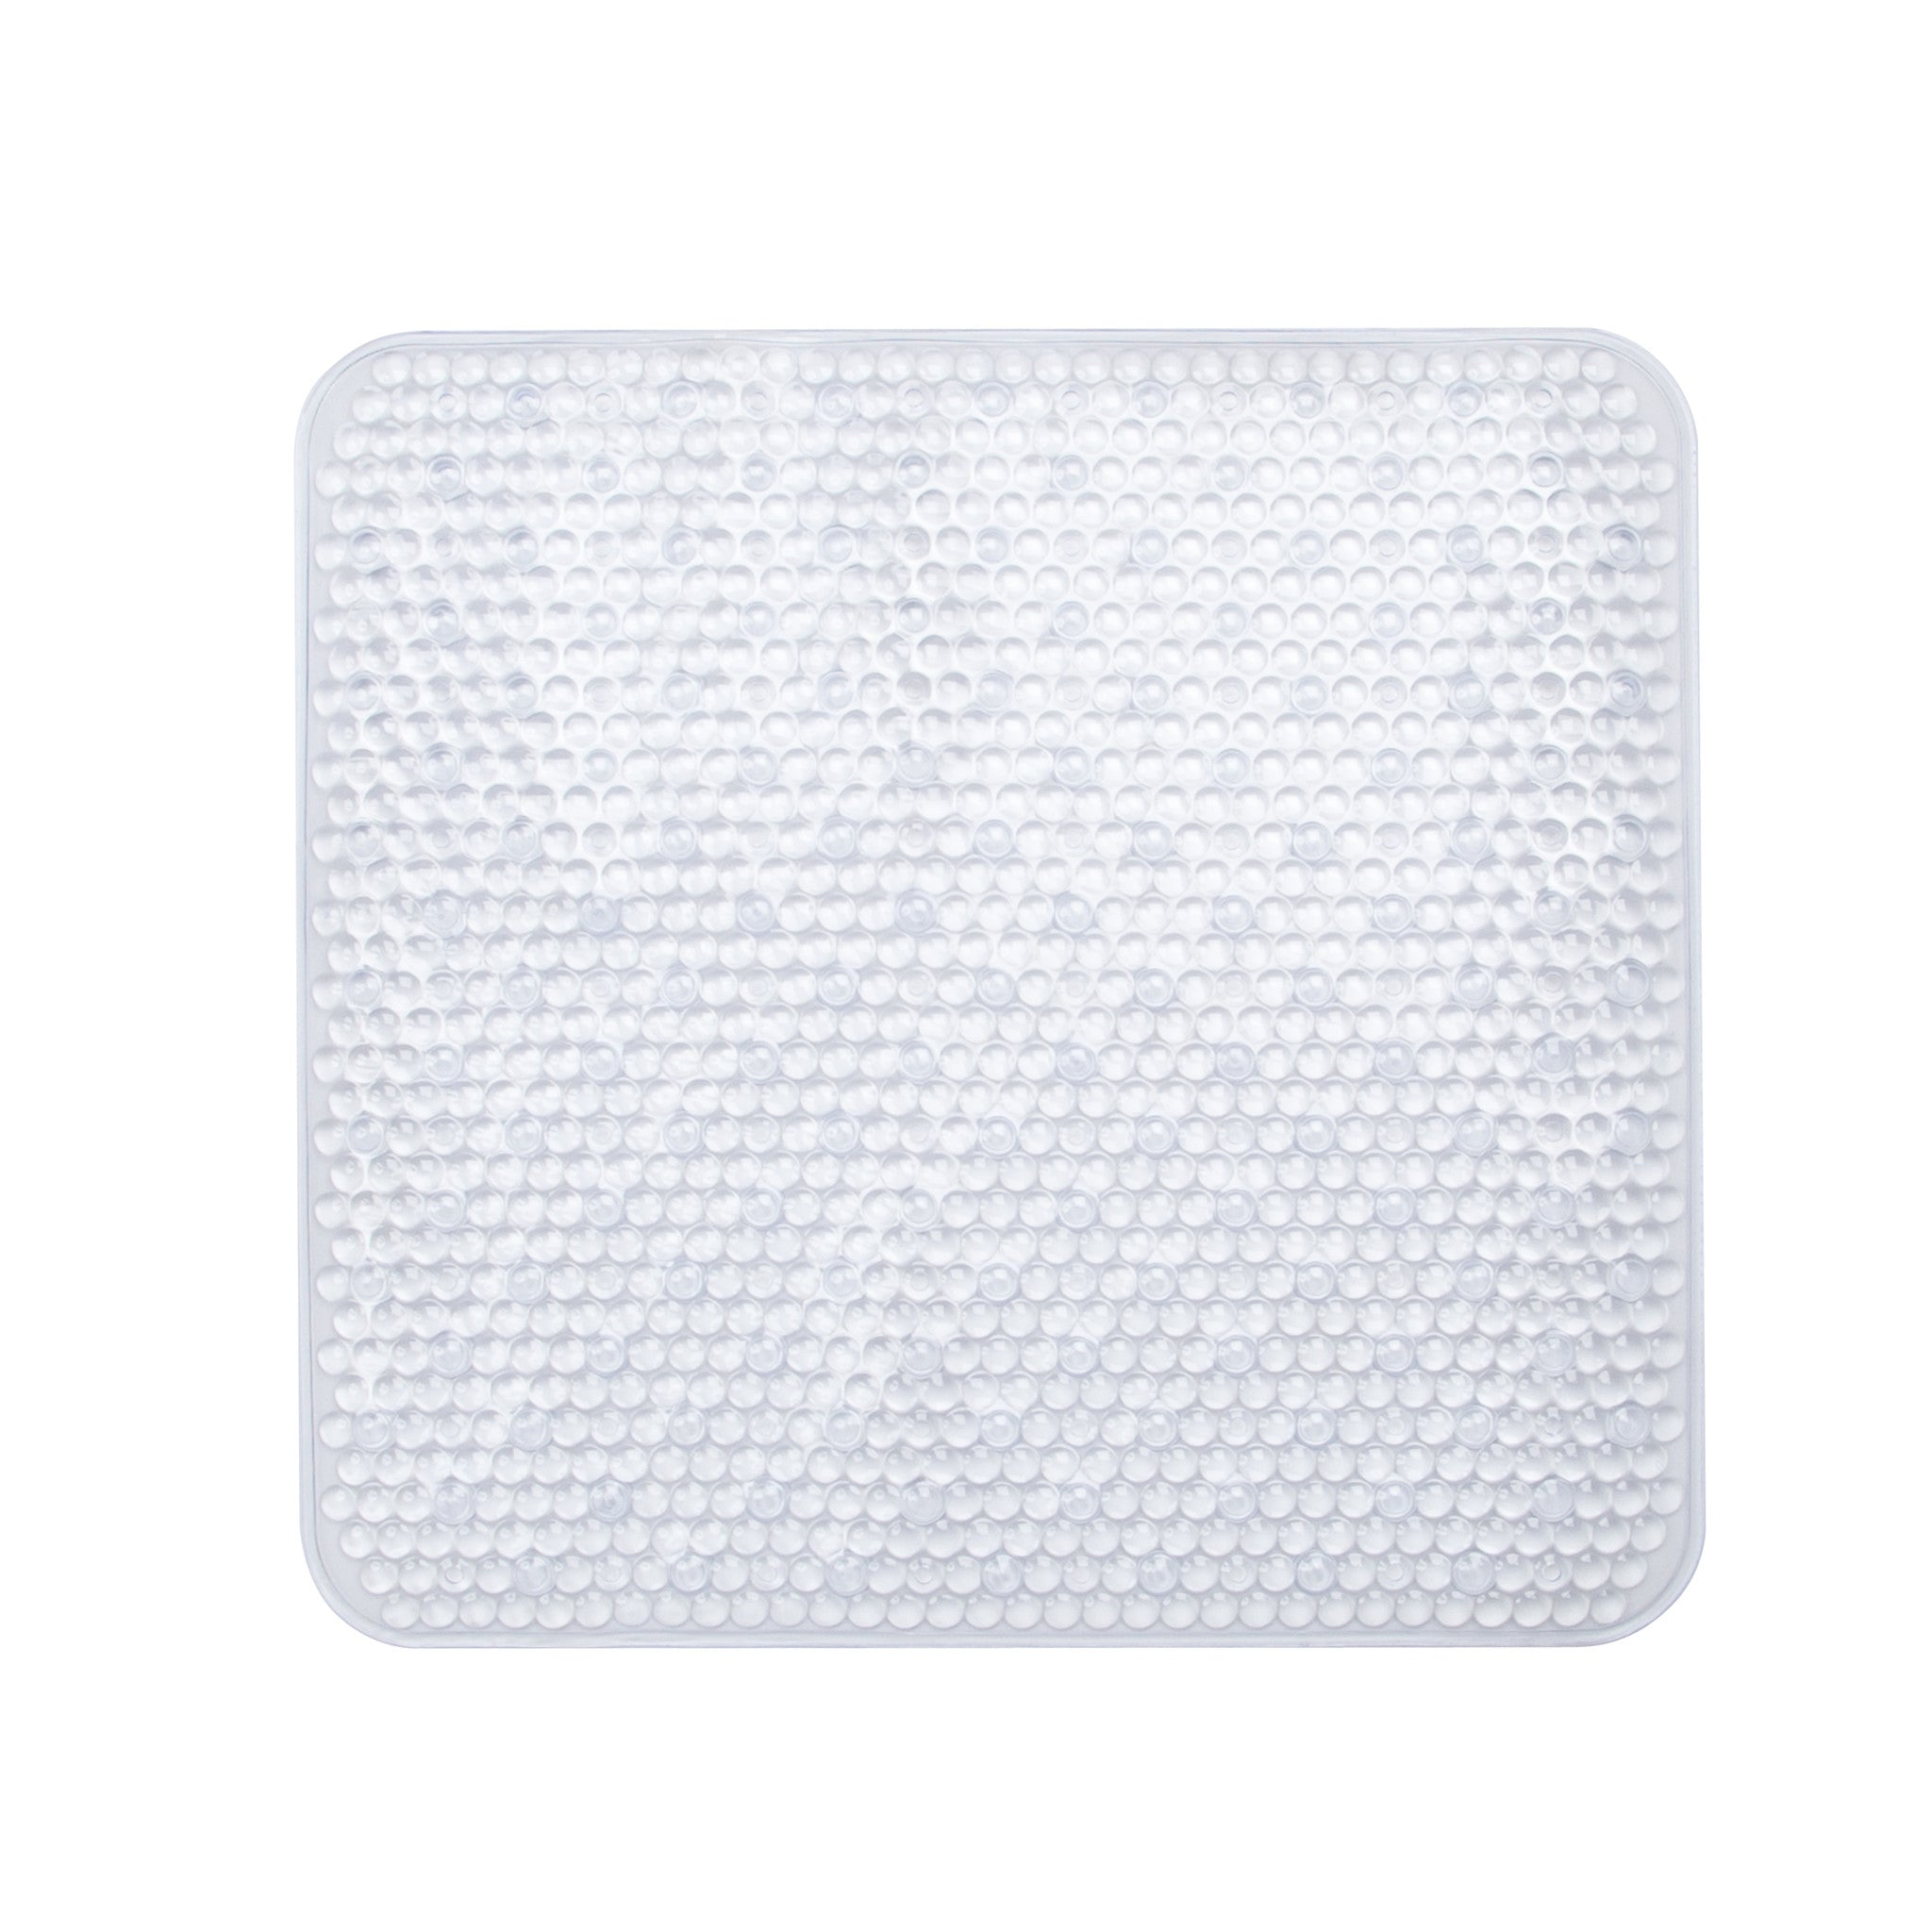 Sabichi Clear Square PVC Bath Mat-99464 - Homely Nigeria